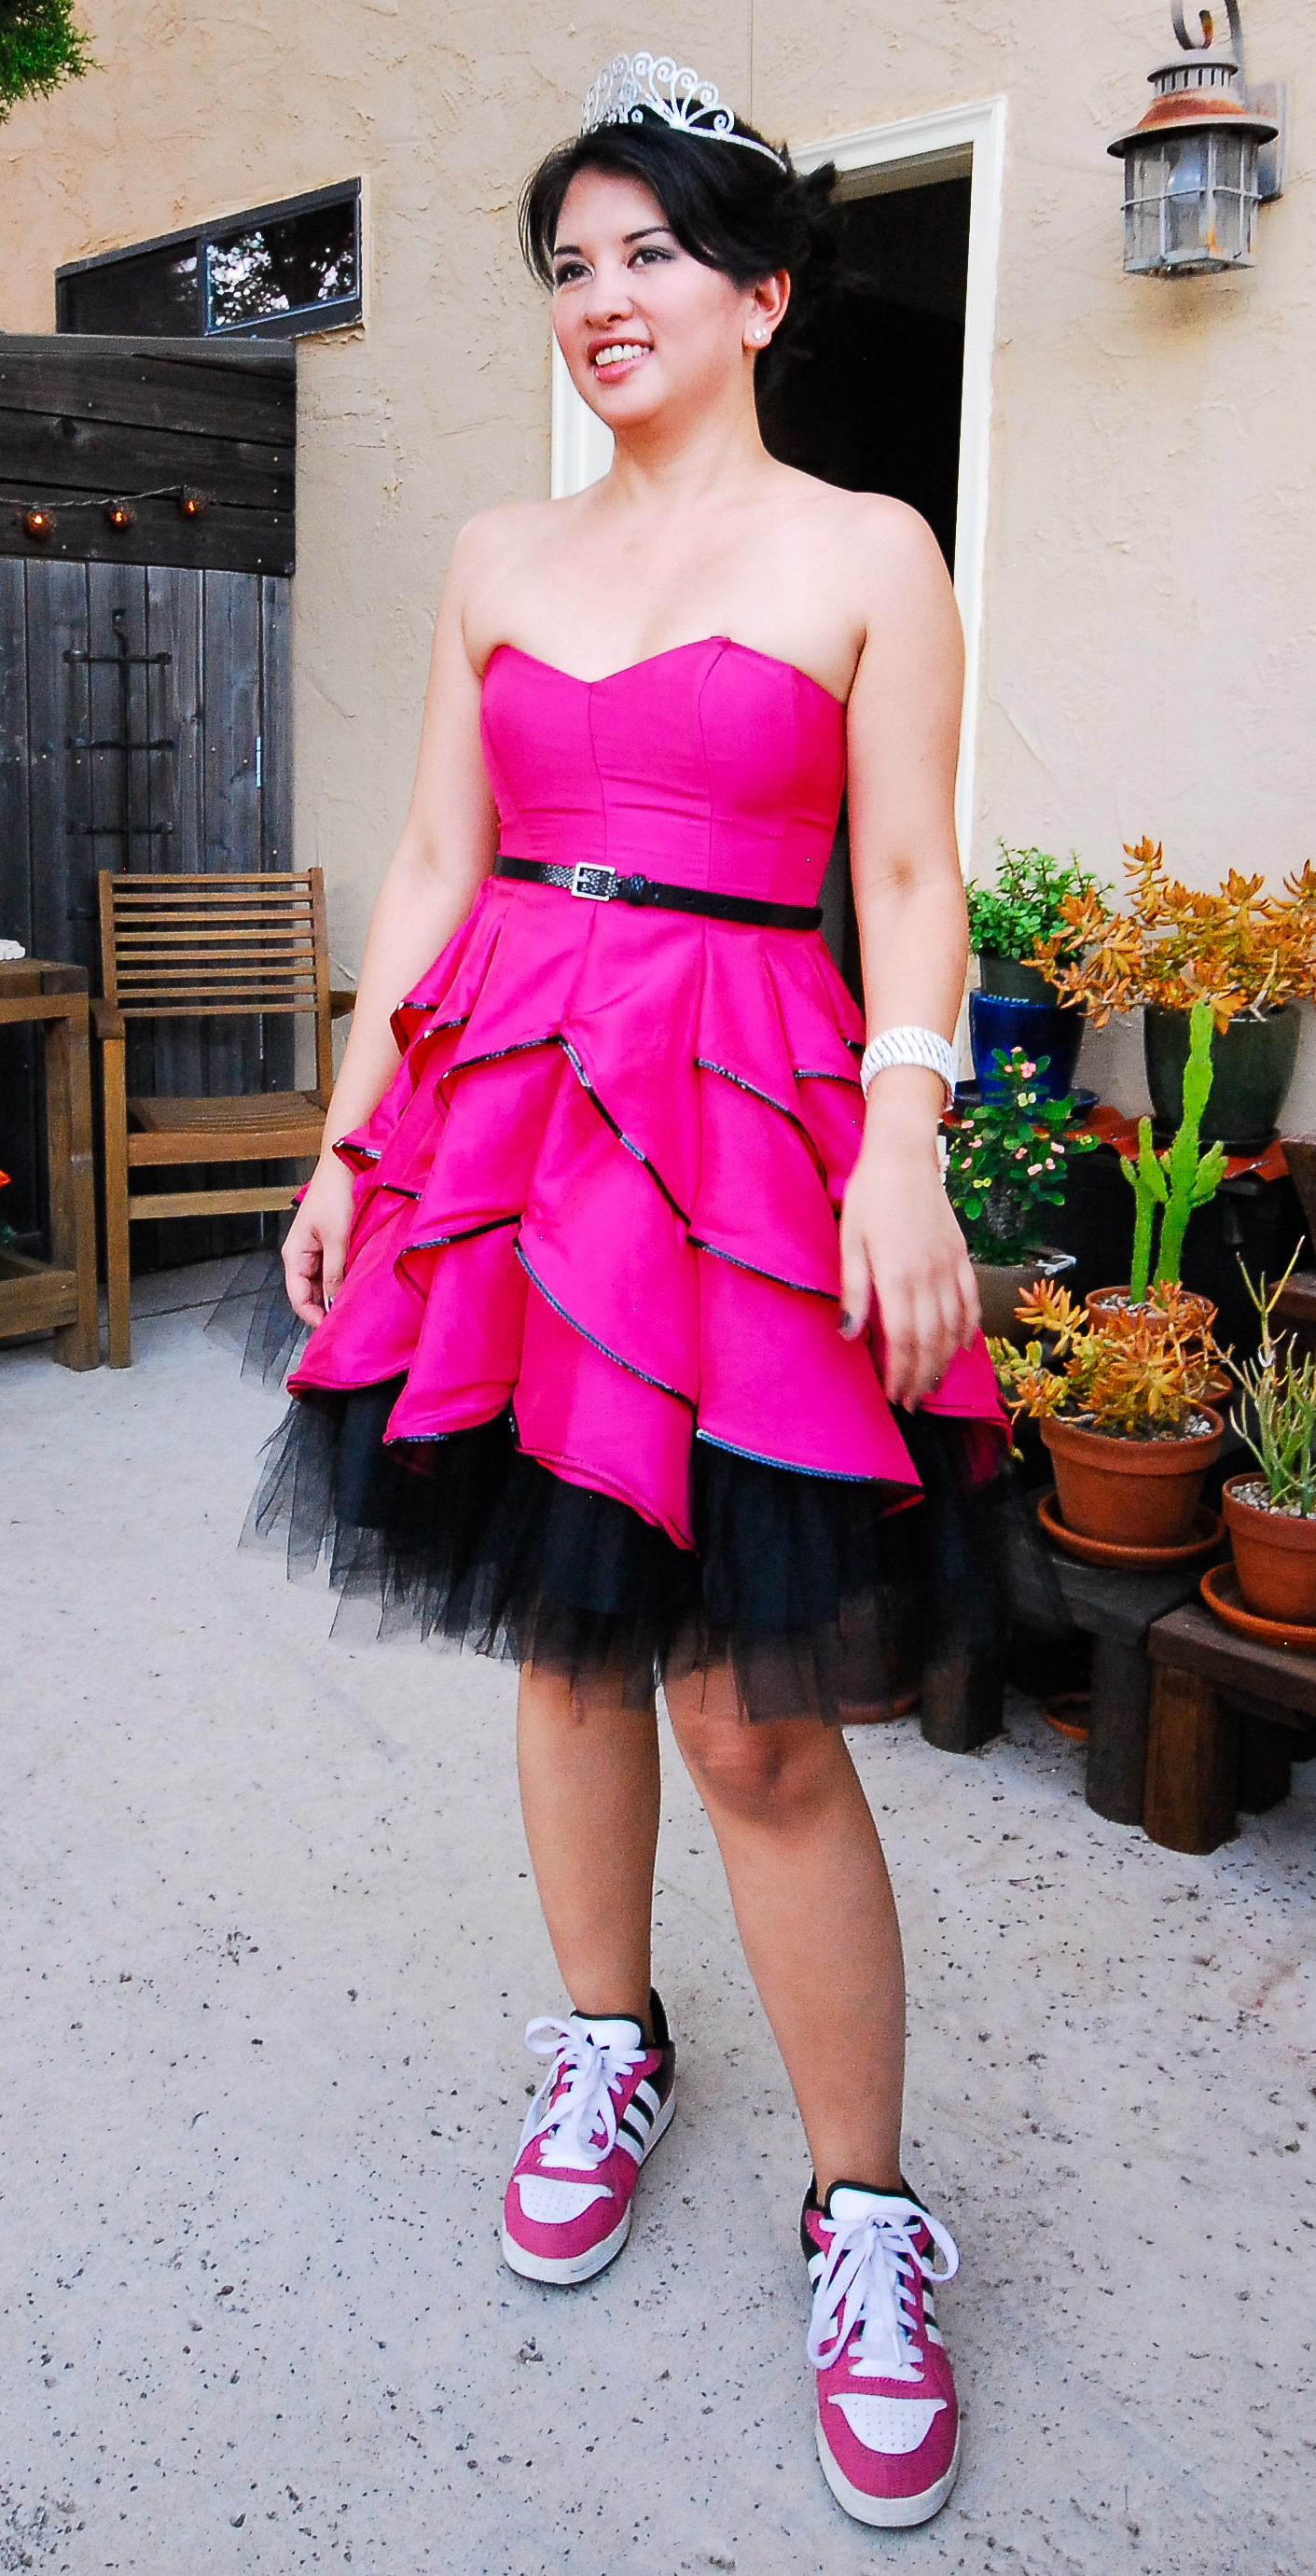 Jenn wearing Betsey Johnson hot pink dress for Double Dragon Debut